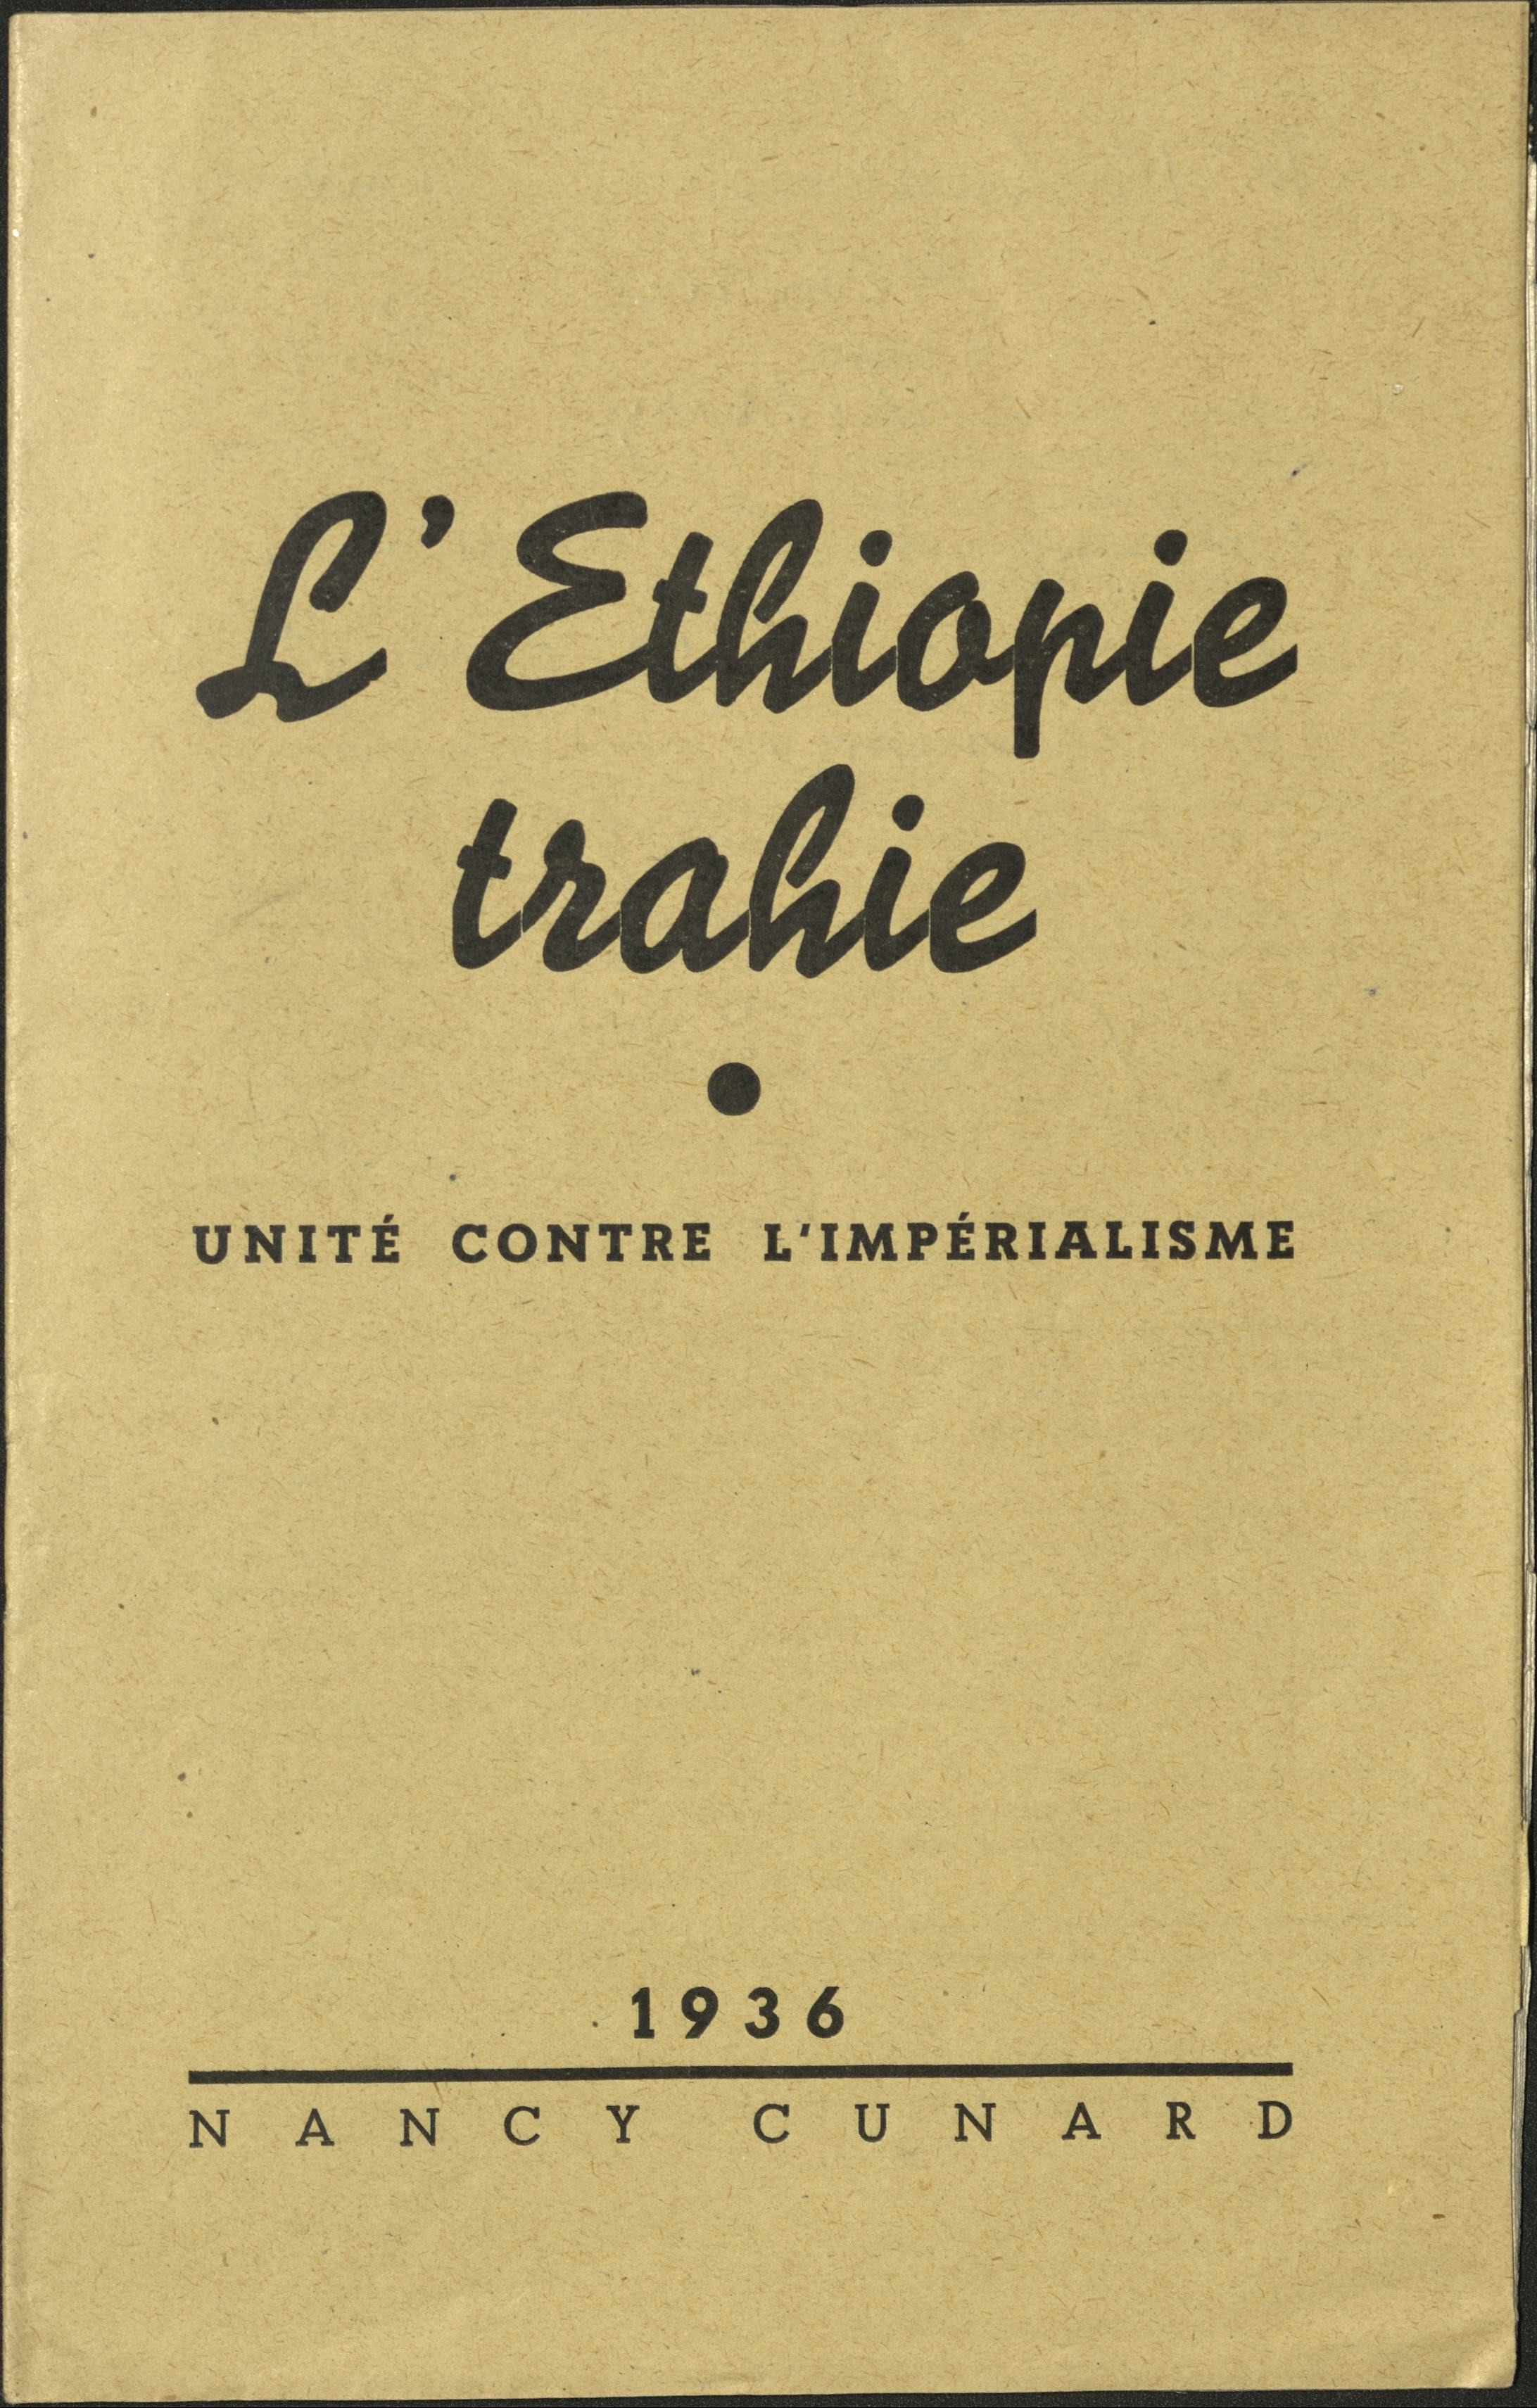 Front cover of Nancy Cunard, L'Ethiopie trahie (1936).